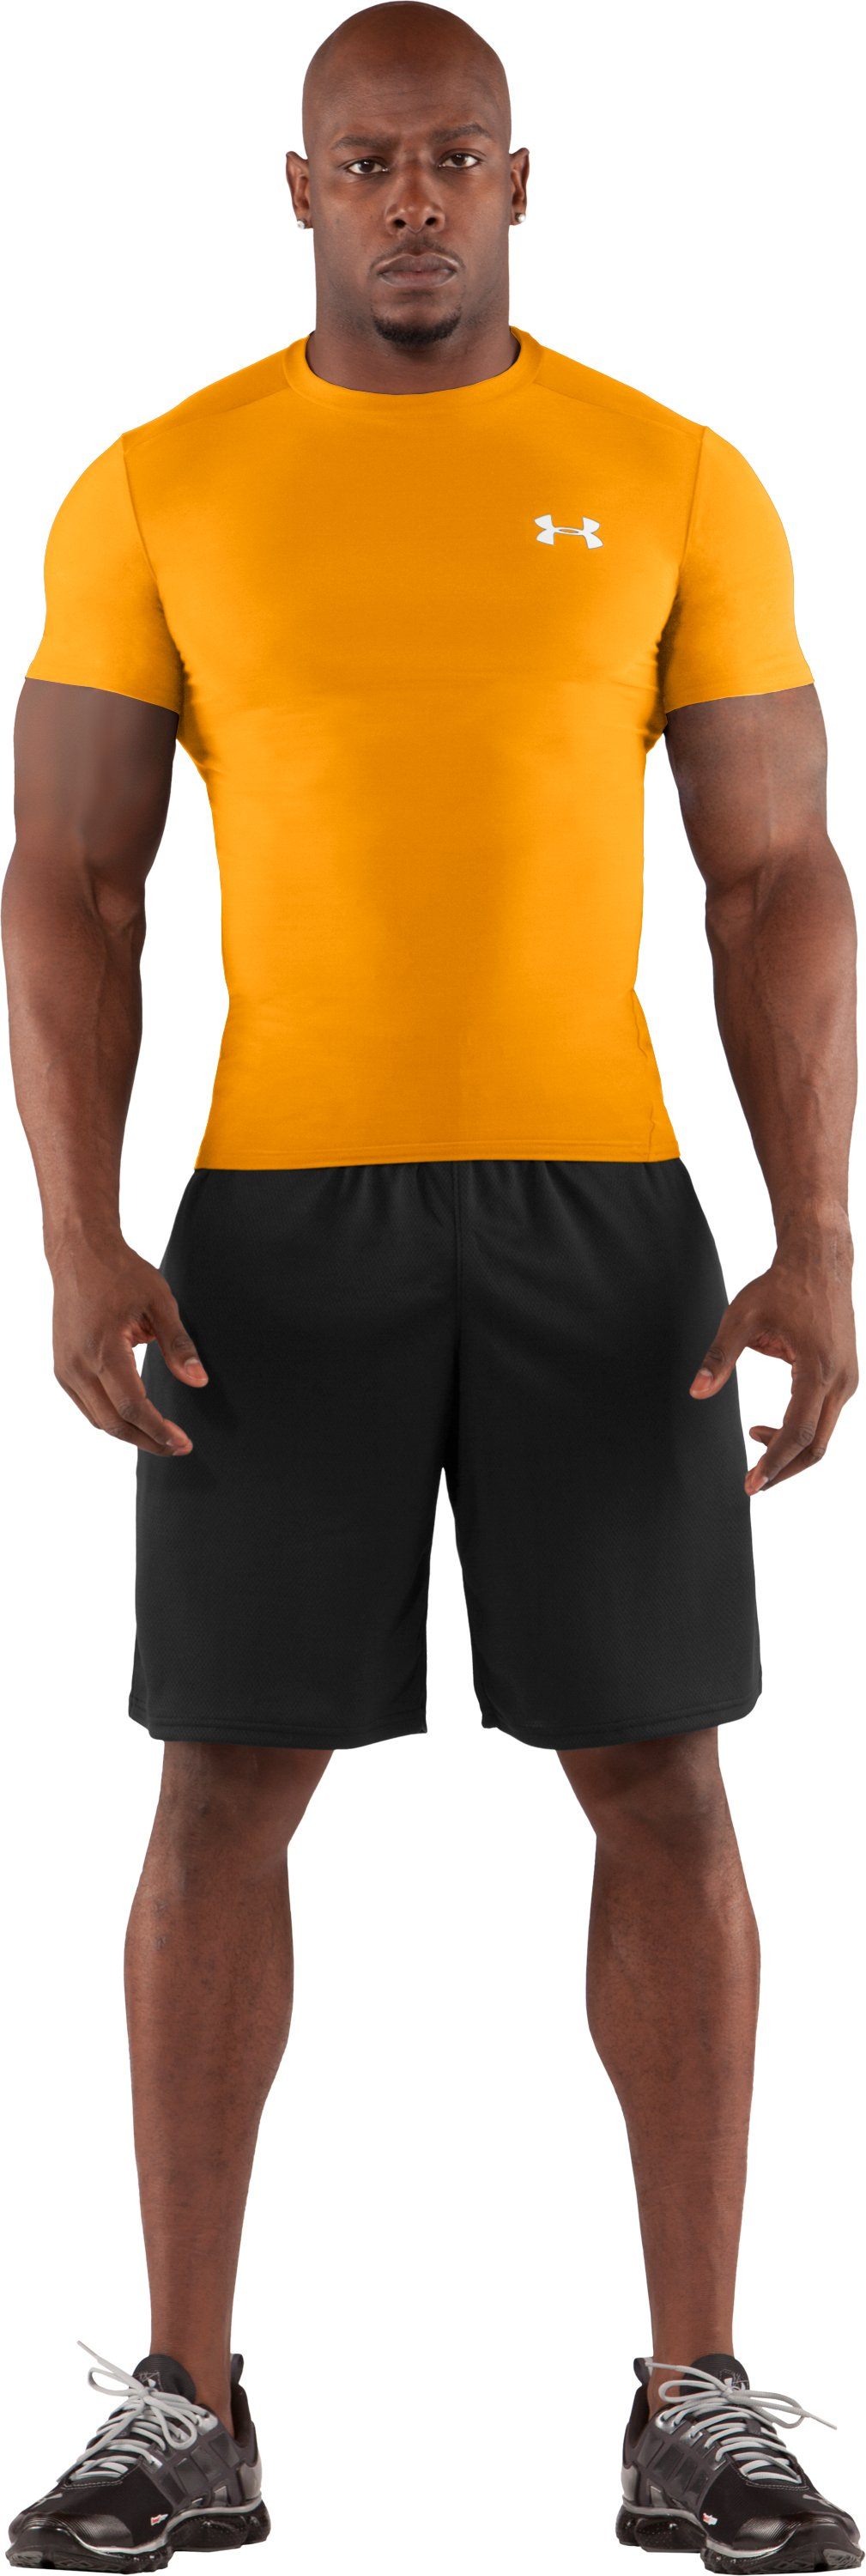 Men's HeatGear® Compression Short Sleeve T-Shirt, Steeltown Gold, Front